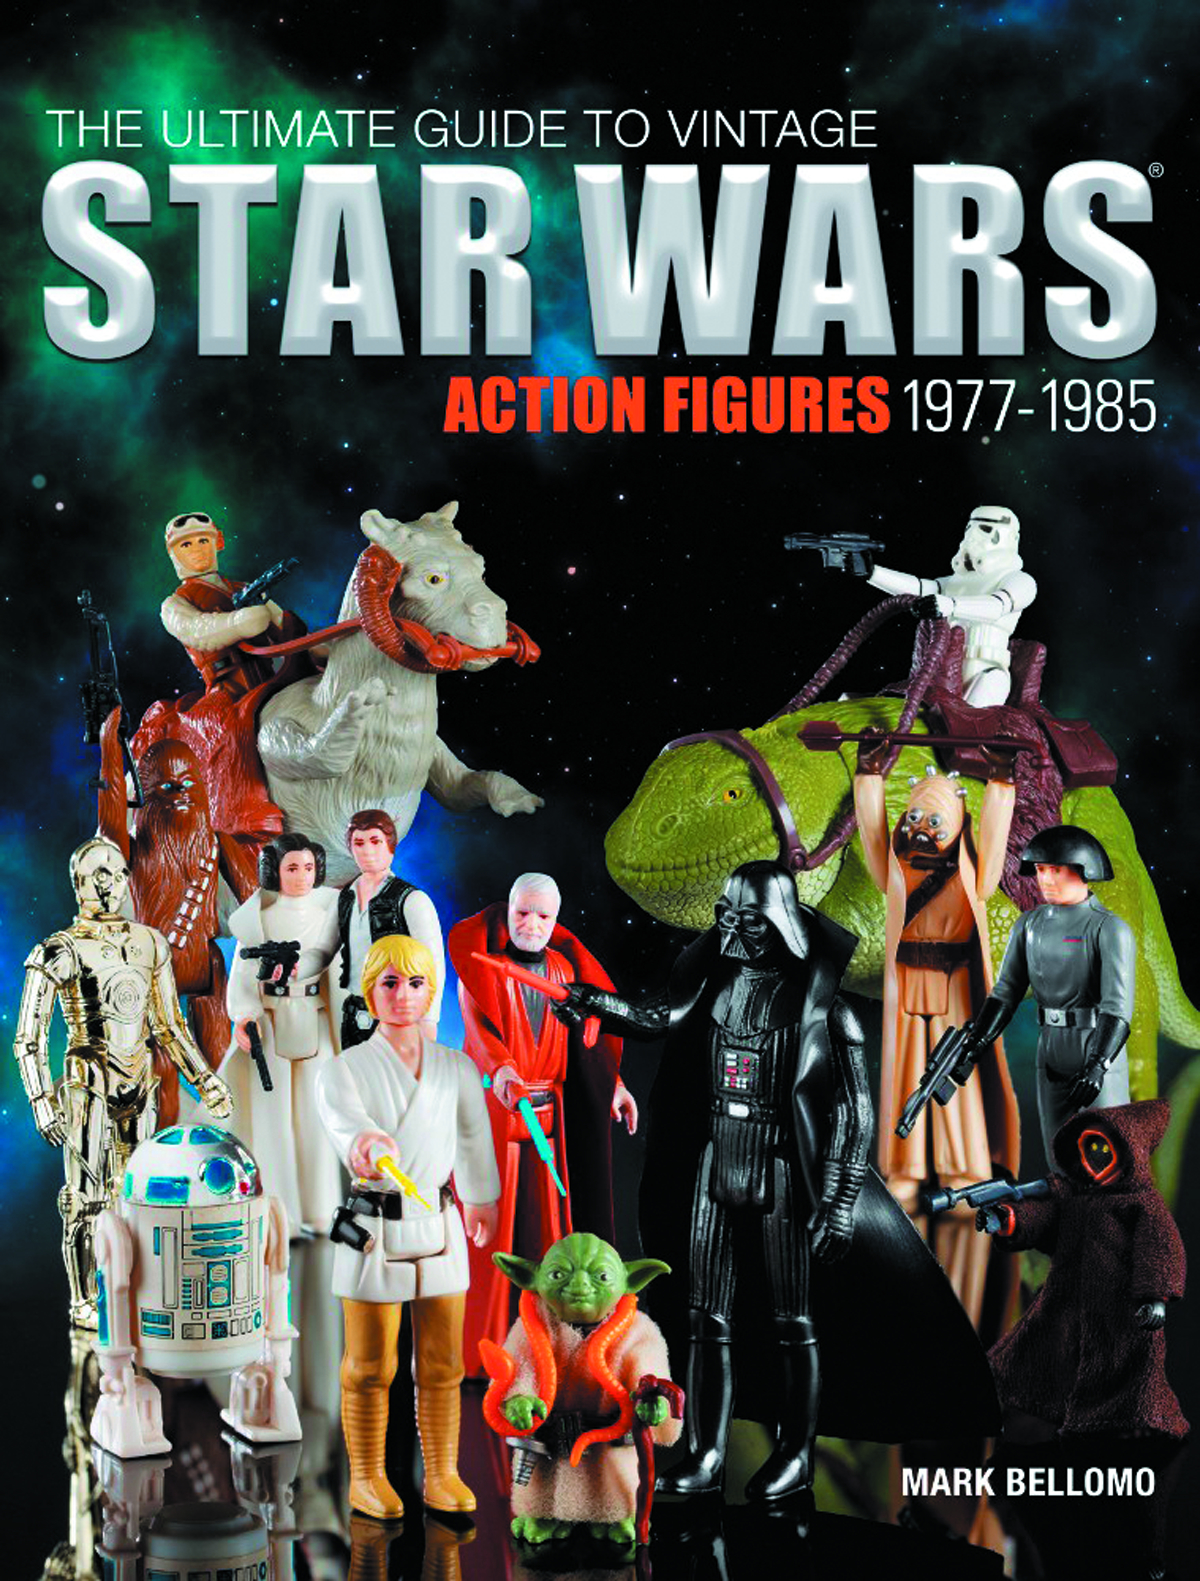 ULT GT VINTAGE STAR WARS ACTION FIGURES 1977 85  C  0 1 0 KAvMbAUD